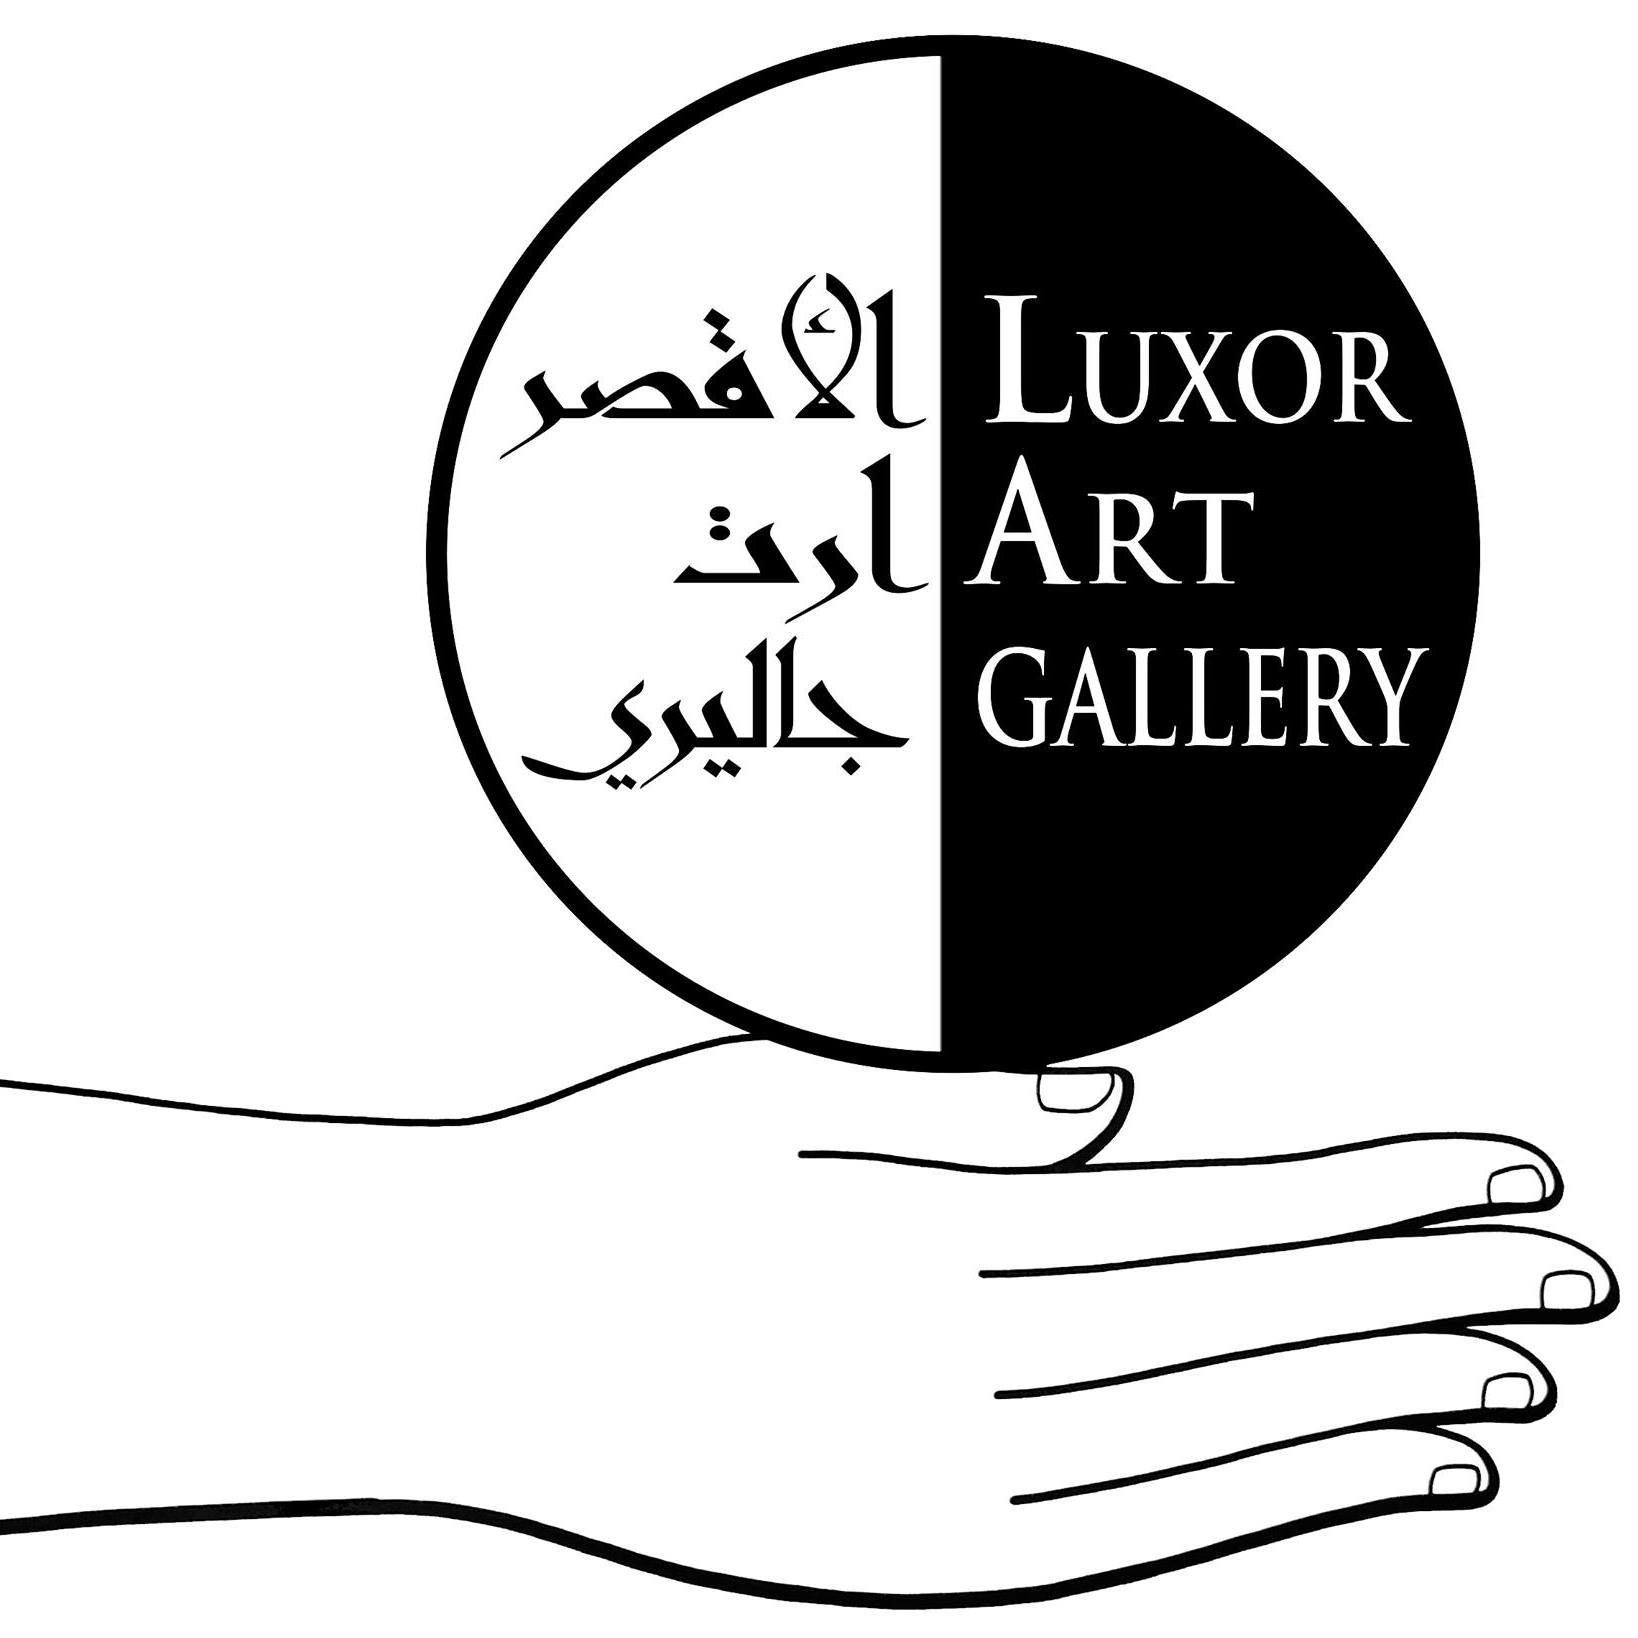 LUXOR ART GALLERY GUEST LIST -